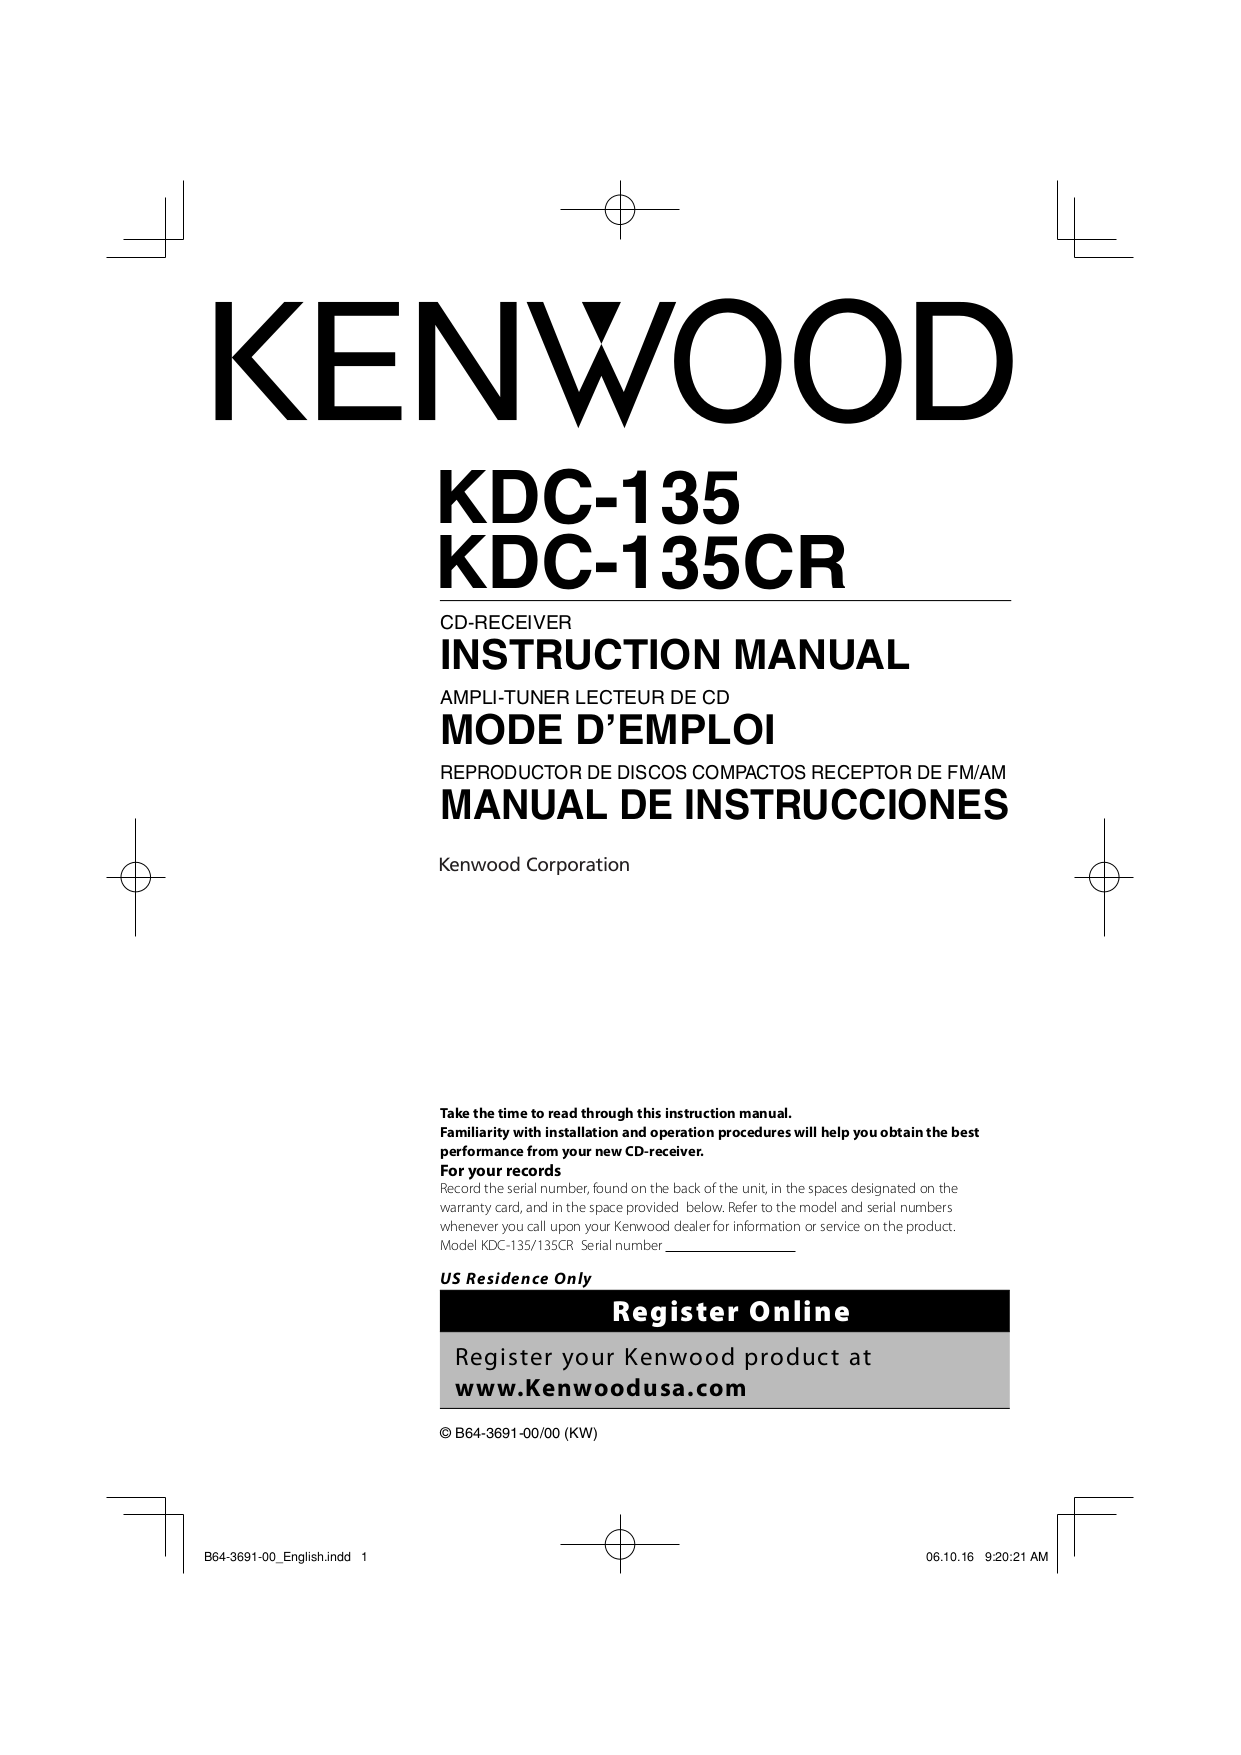 19 New Kenwood Kdc 135 Wiring Diagram